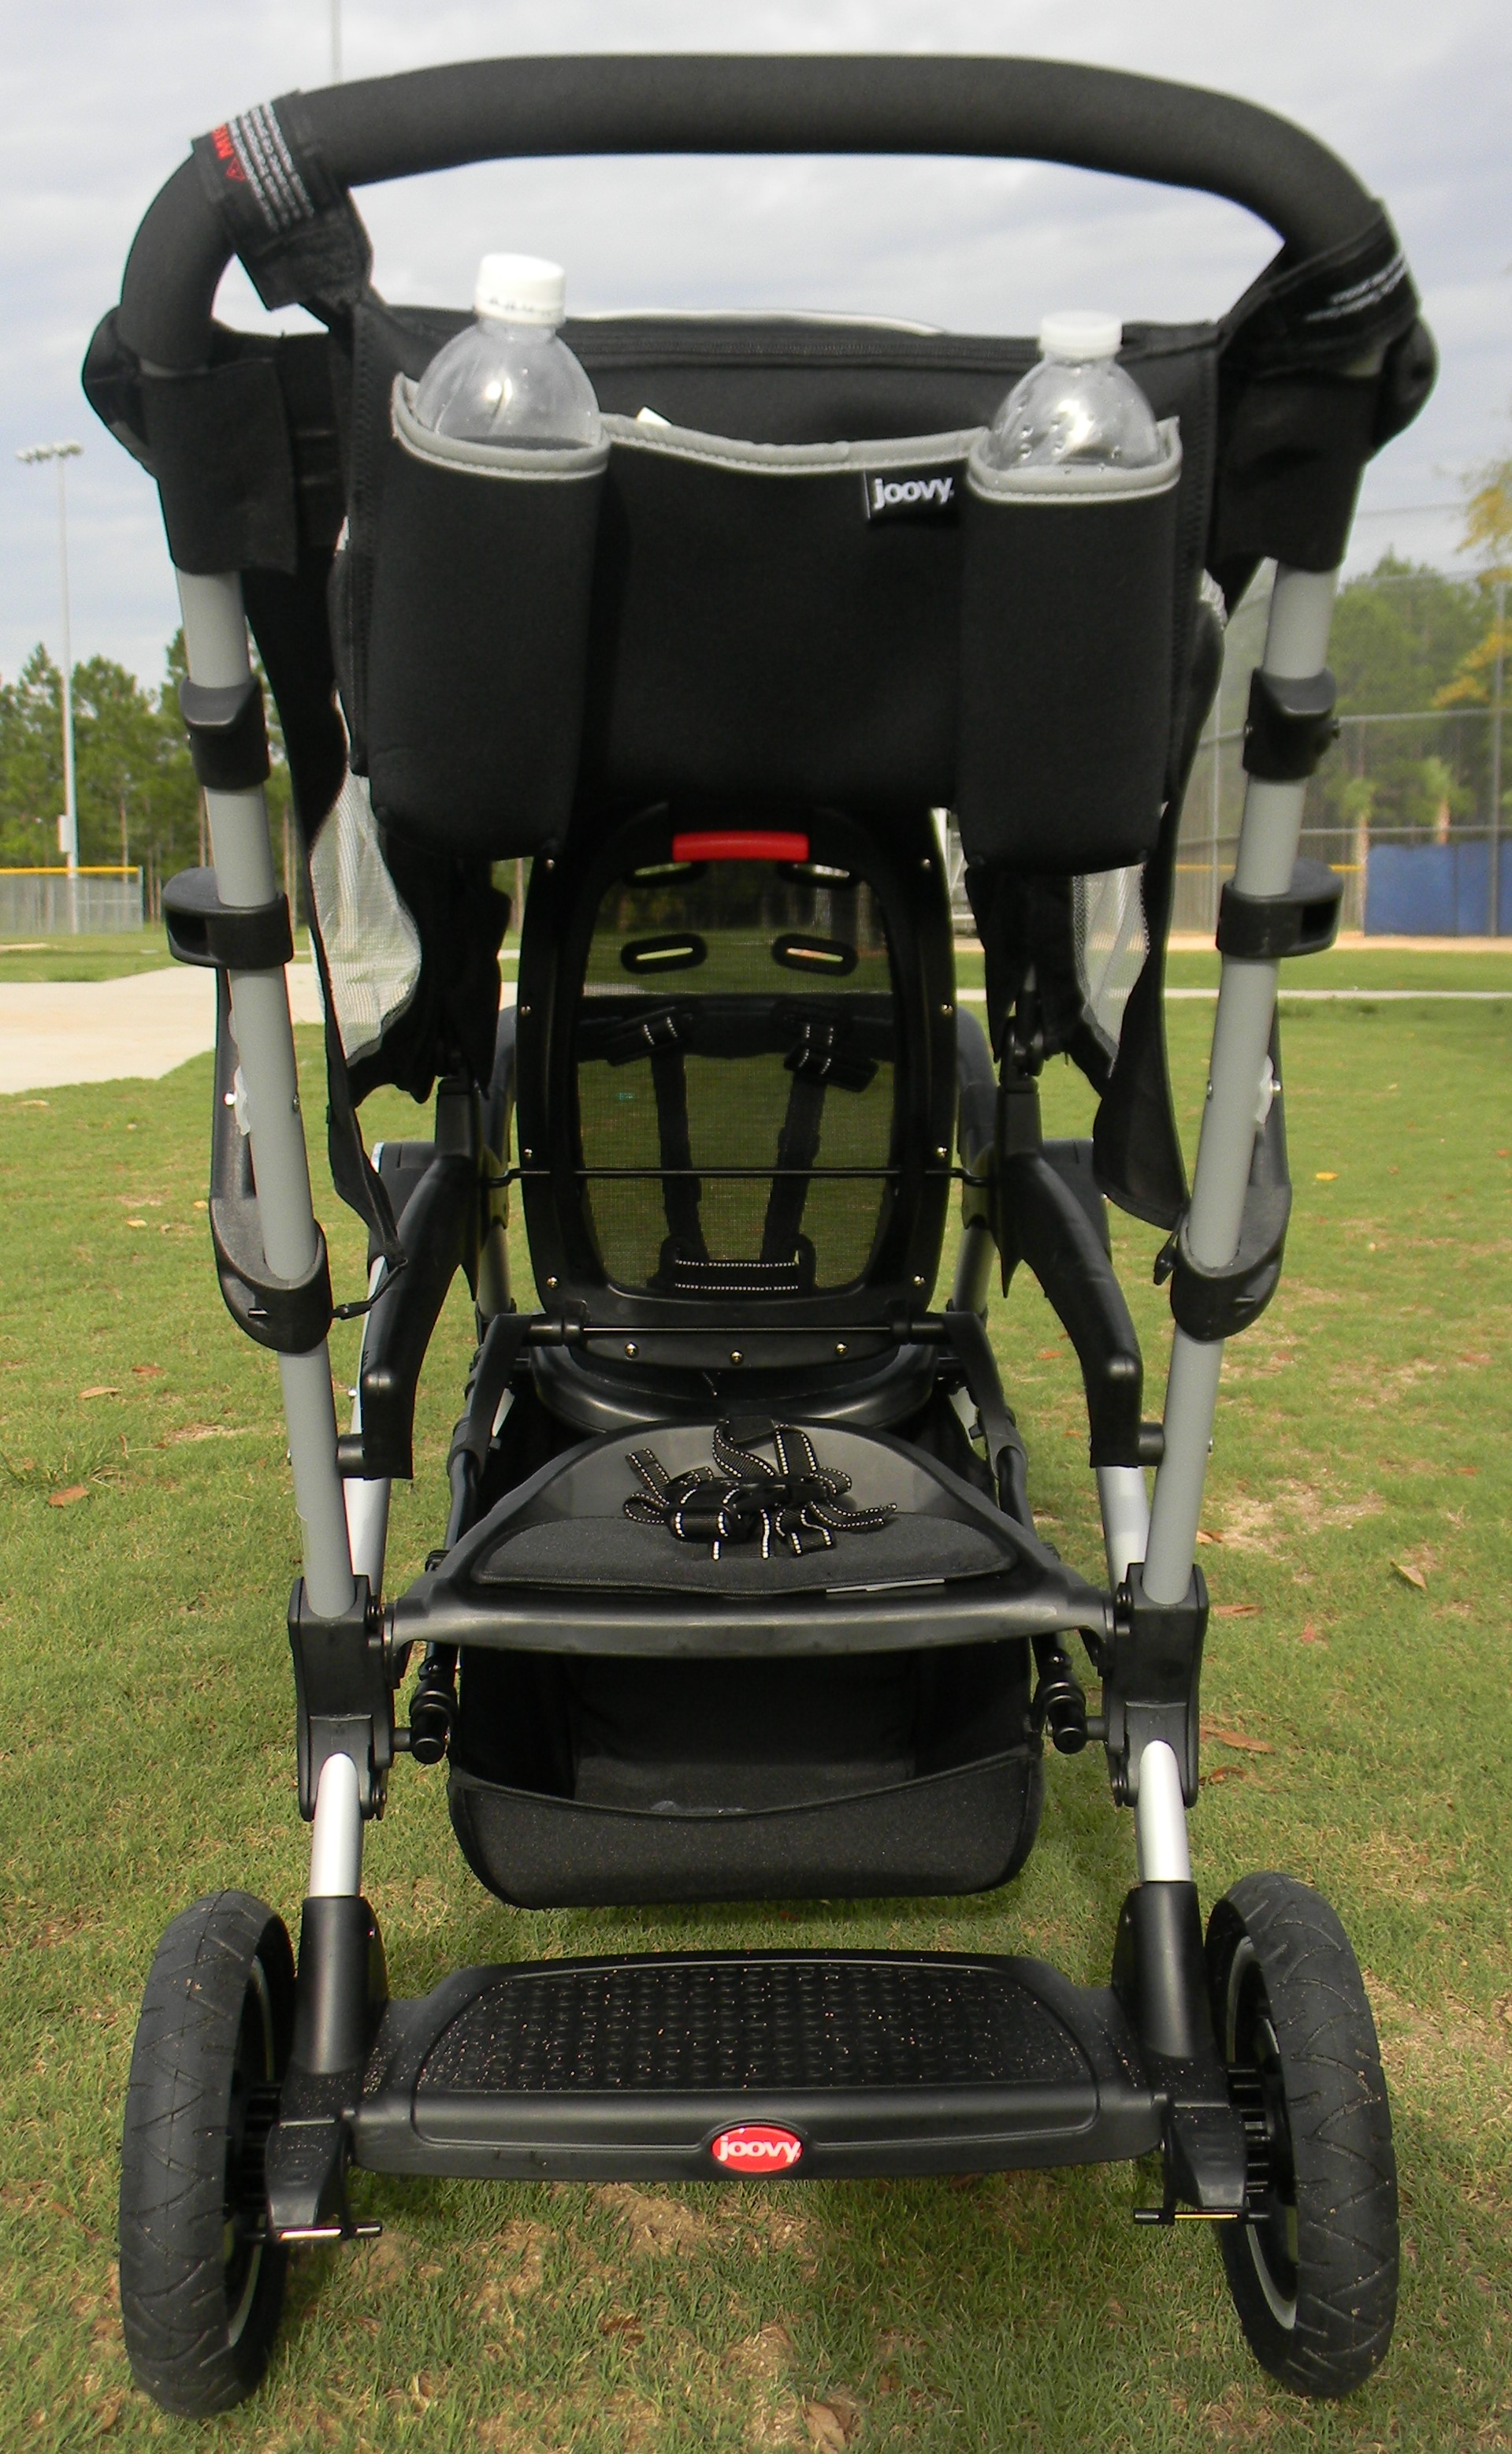 Attractive Co Keyfit 30 Sit N Stand Stroller Manual This Joovy Ergo Caboose Stroller Product Review Sit N Stand Stroller Compatible baby Sit N Stand Stroller